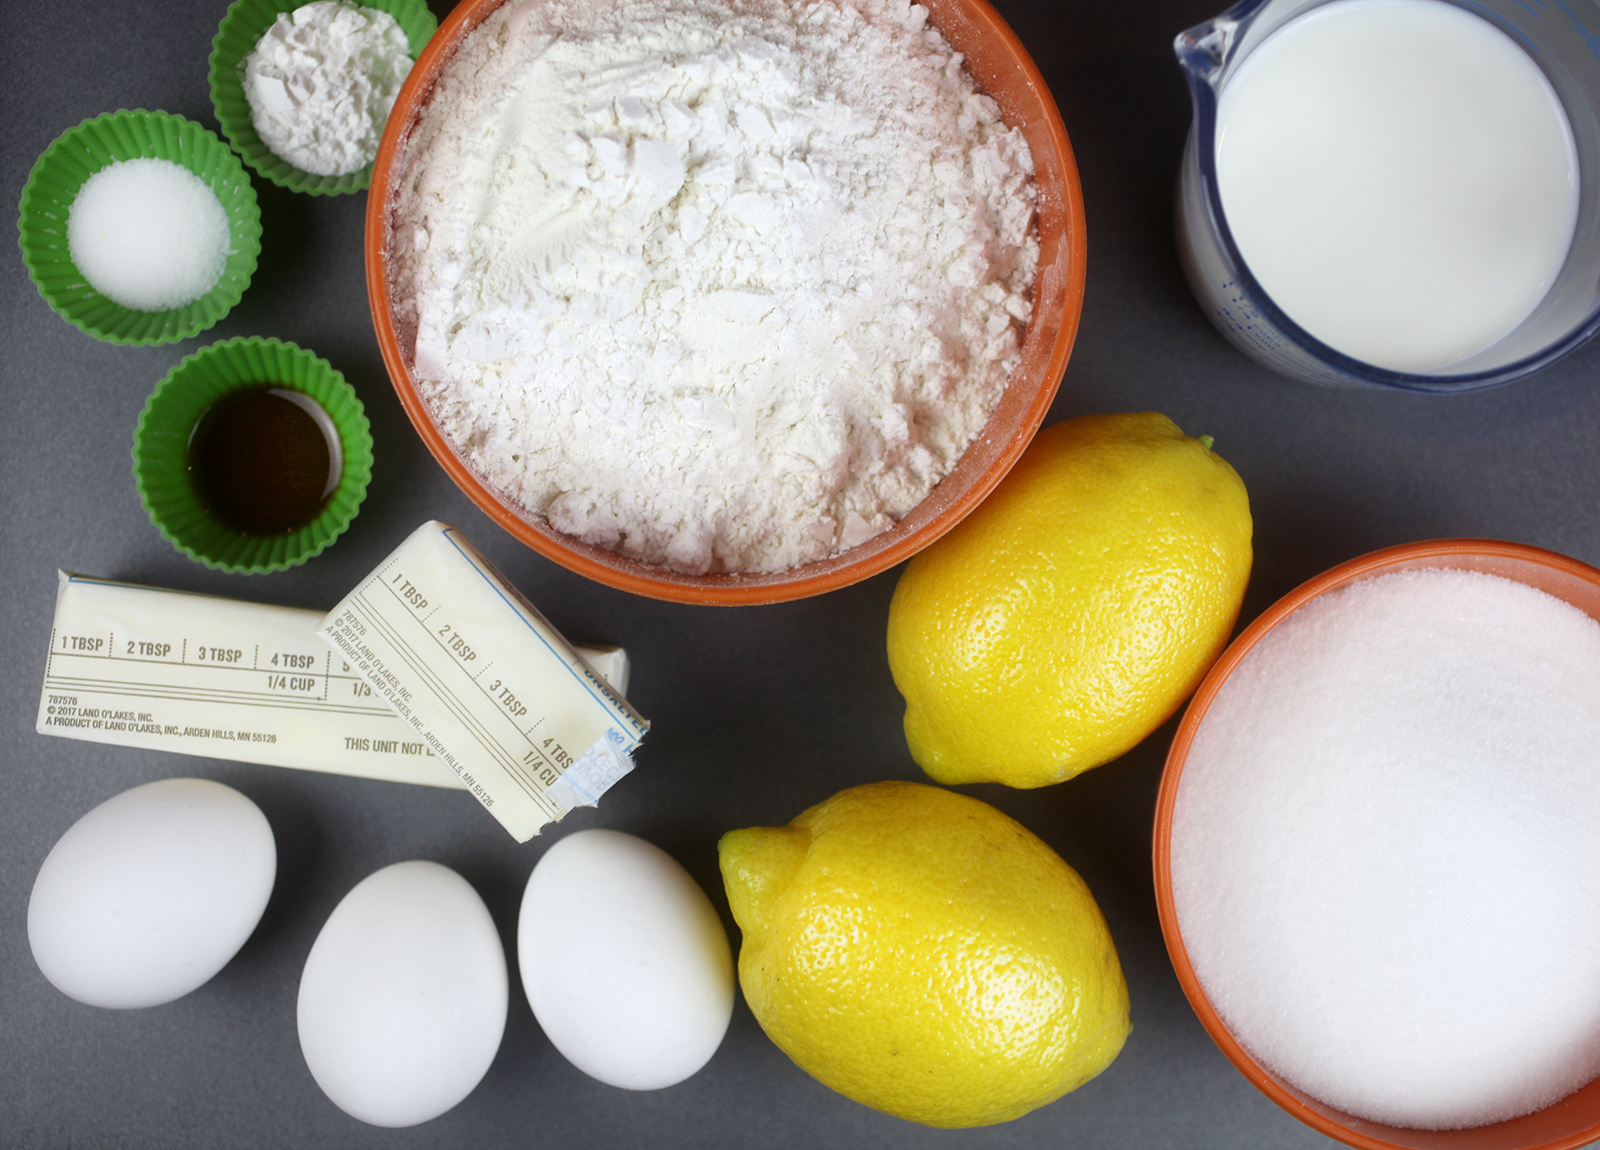 Lemon Cupcake Ingredients